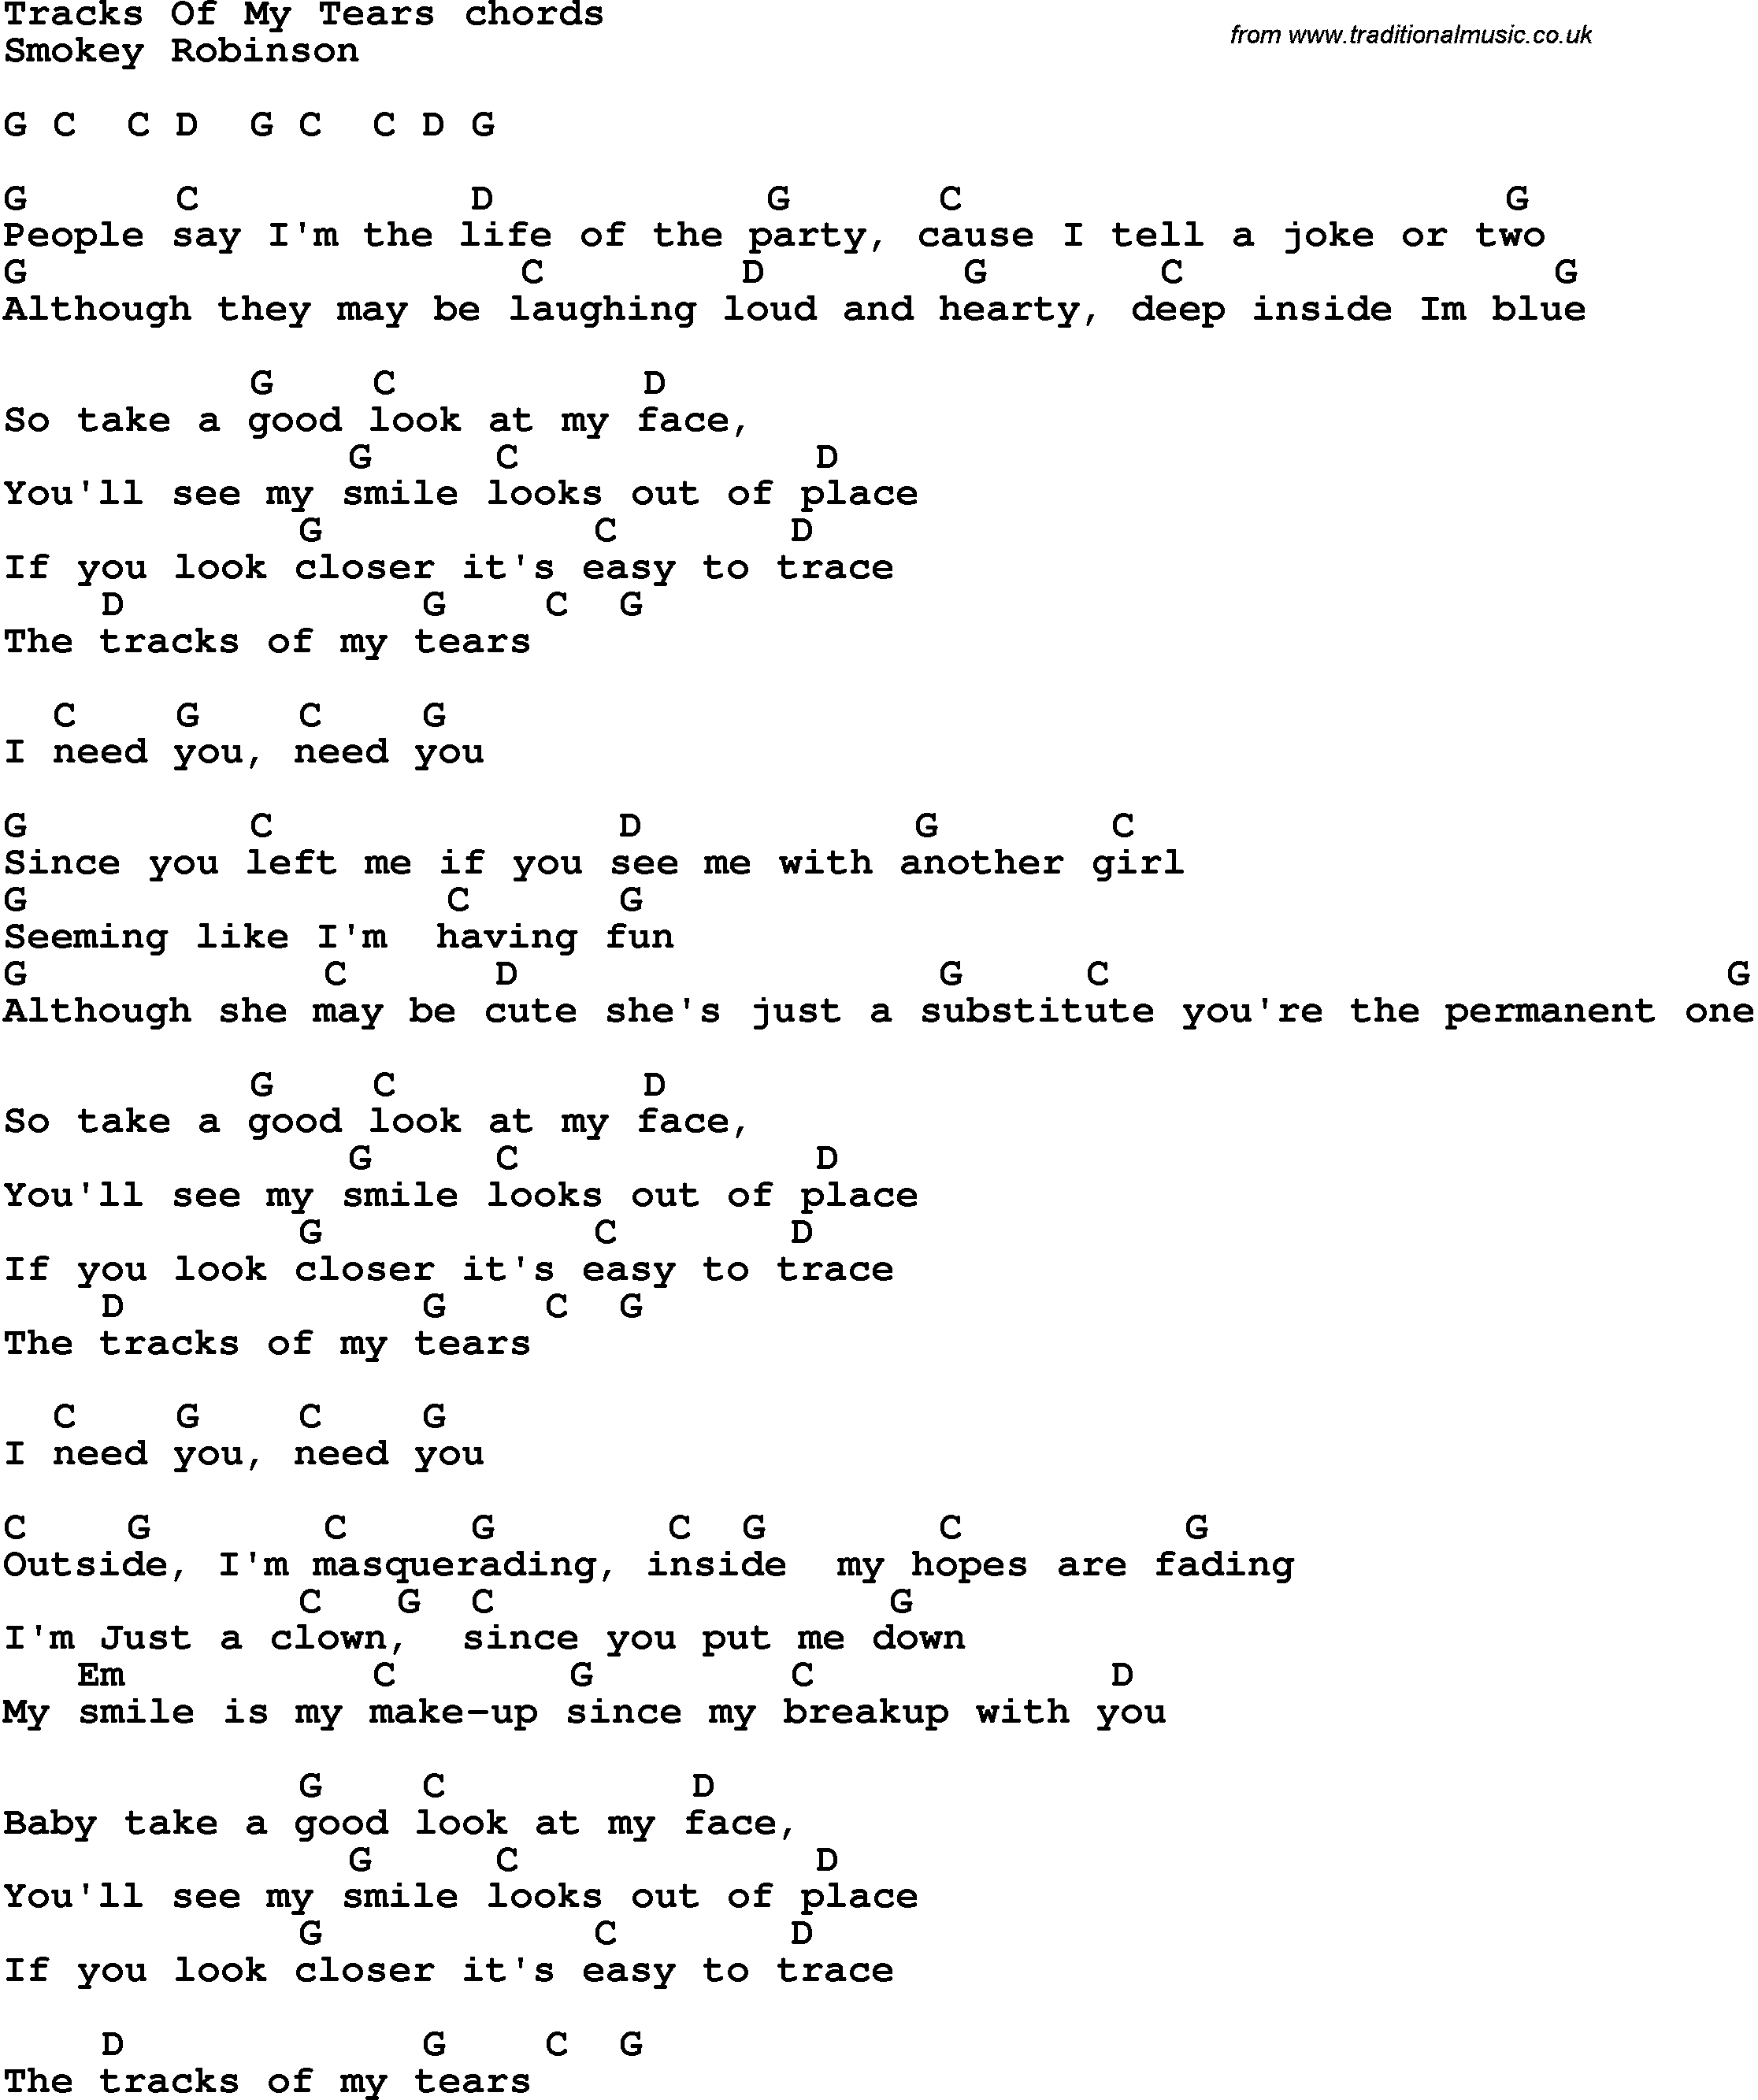 Song Lyrics With Guitar Chords For Tracks Of My Tears